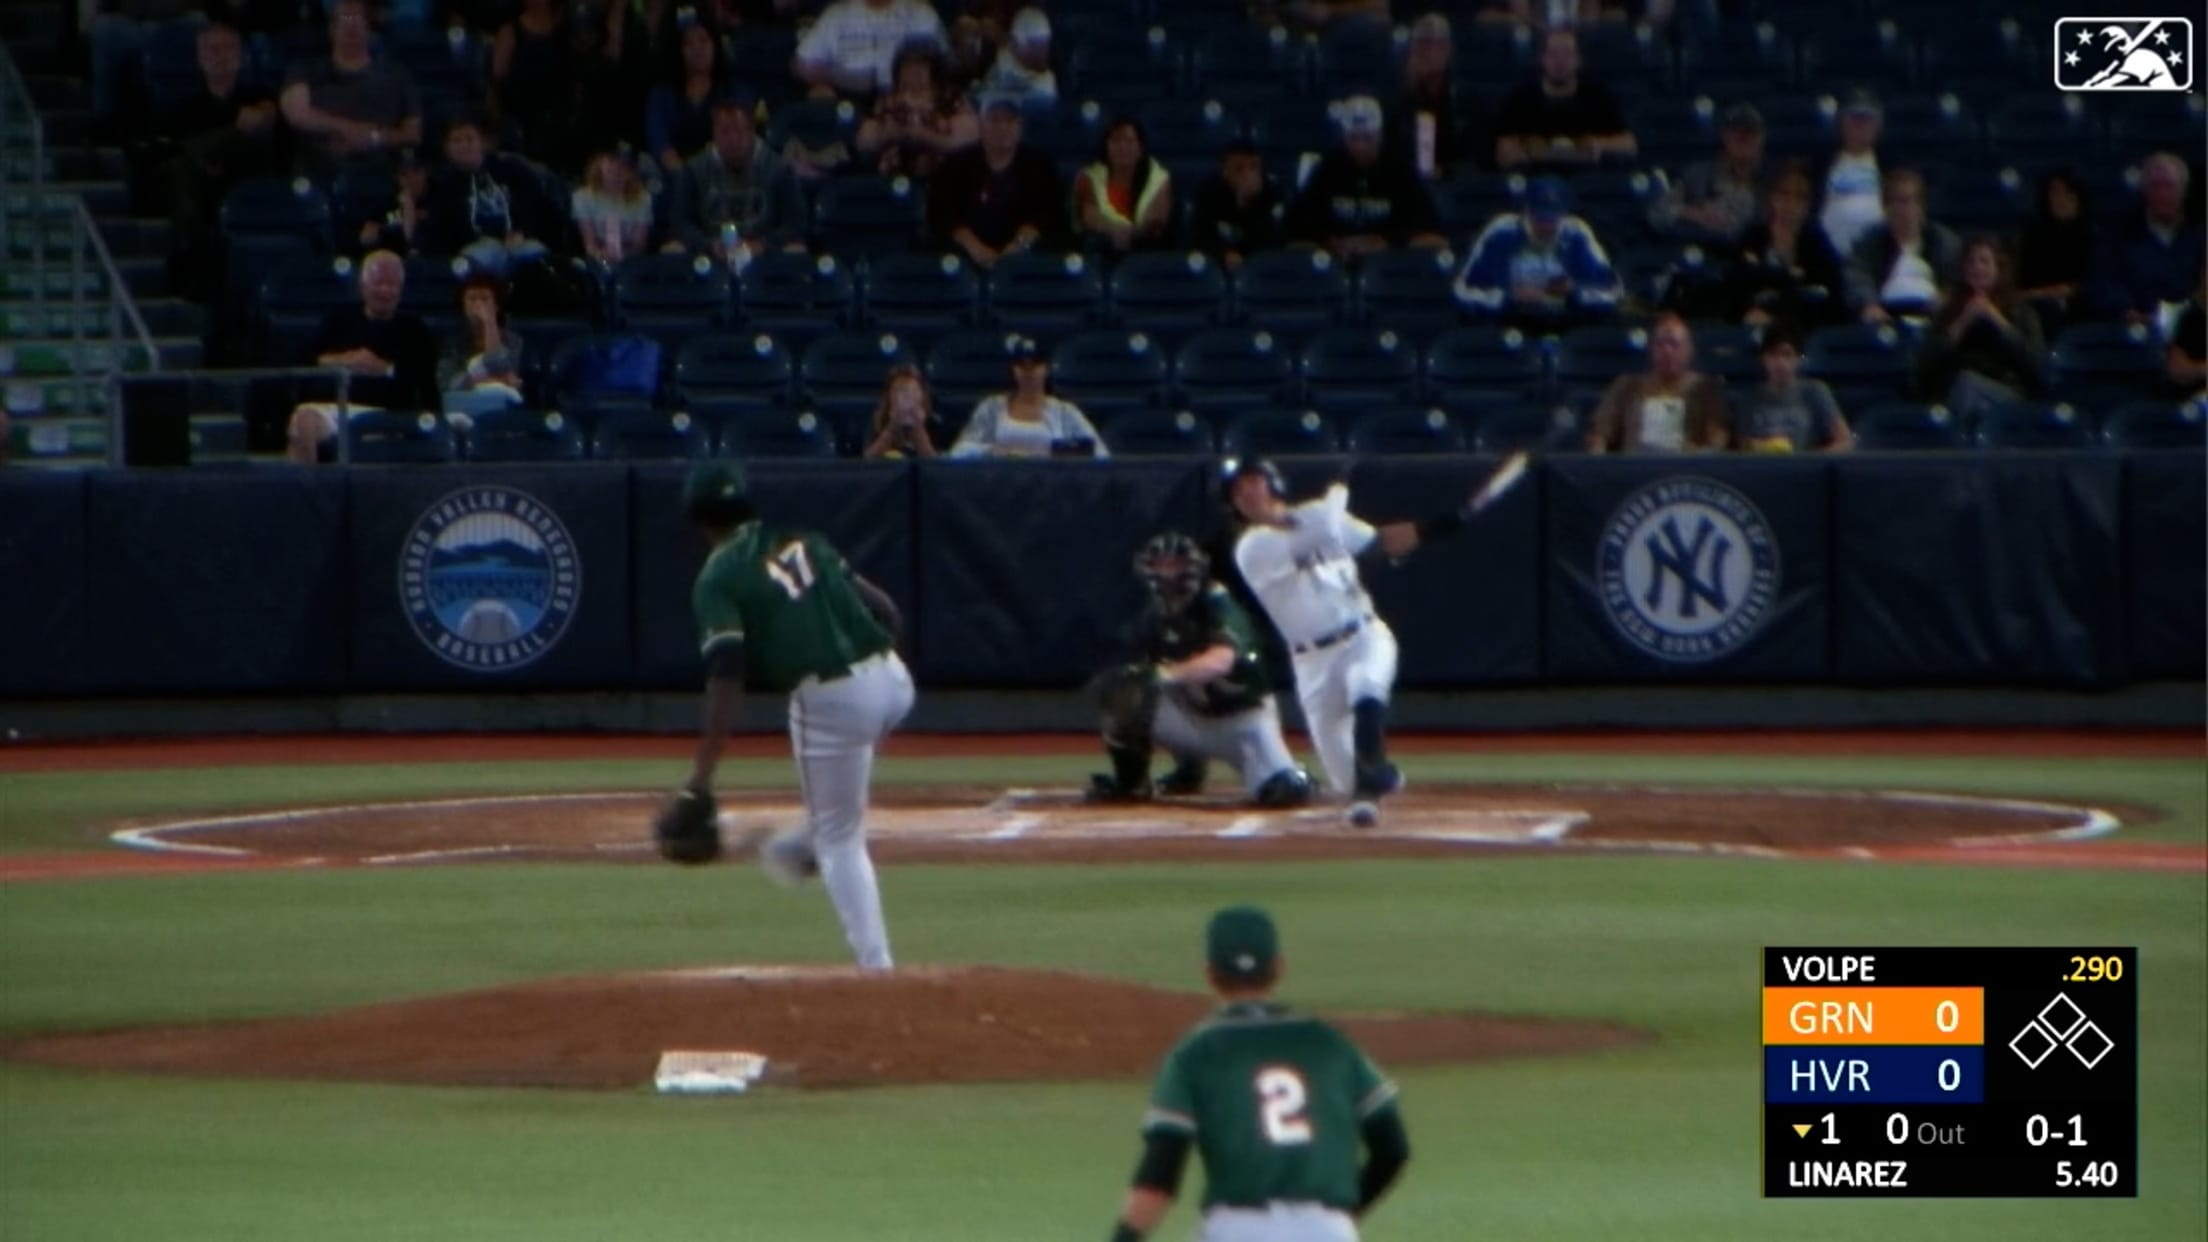 Volpe drills 27th homer